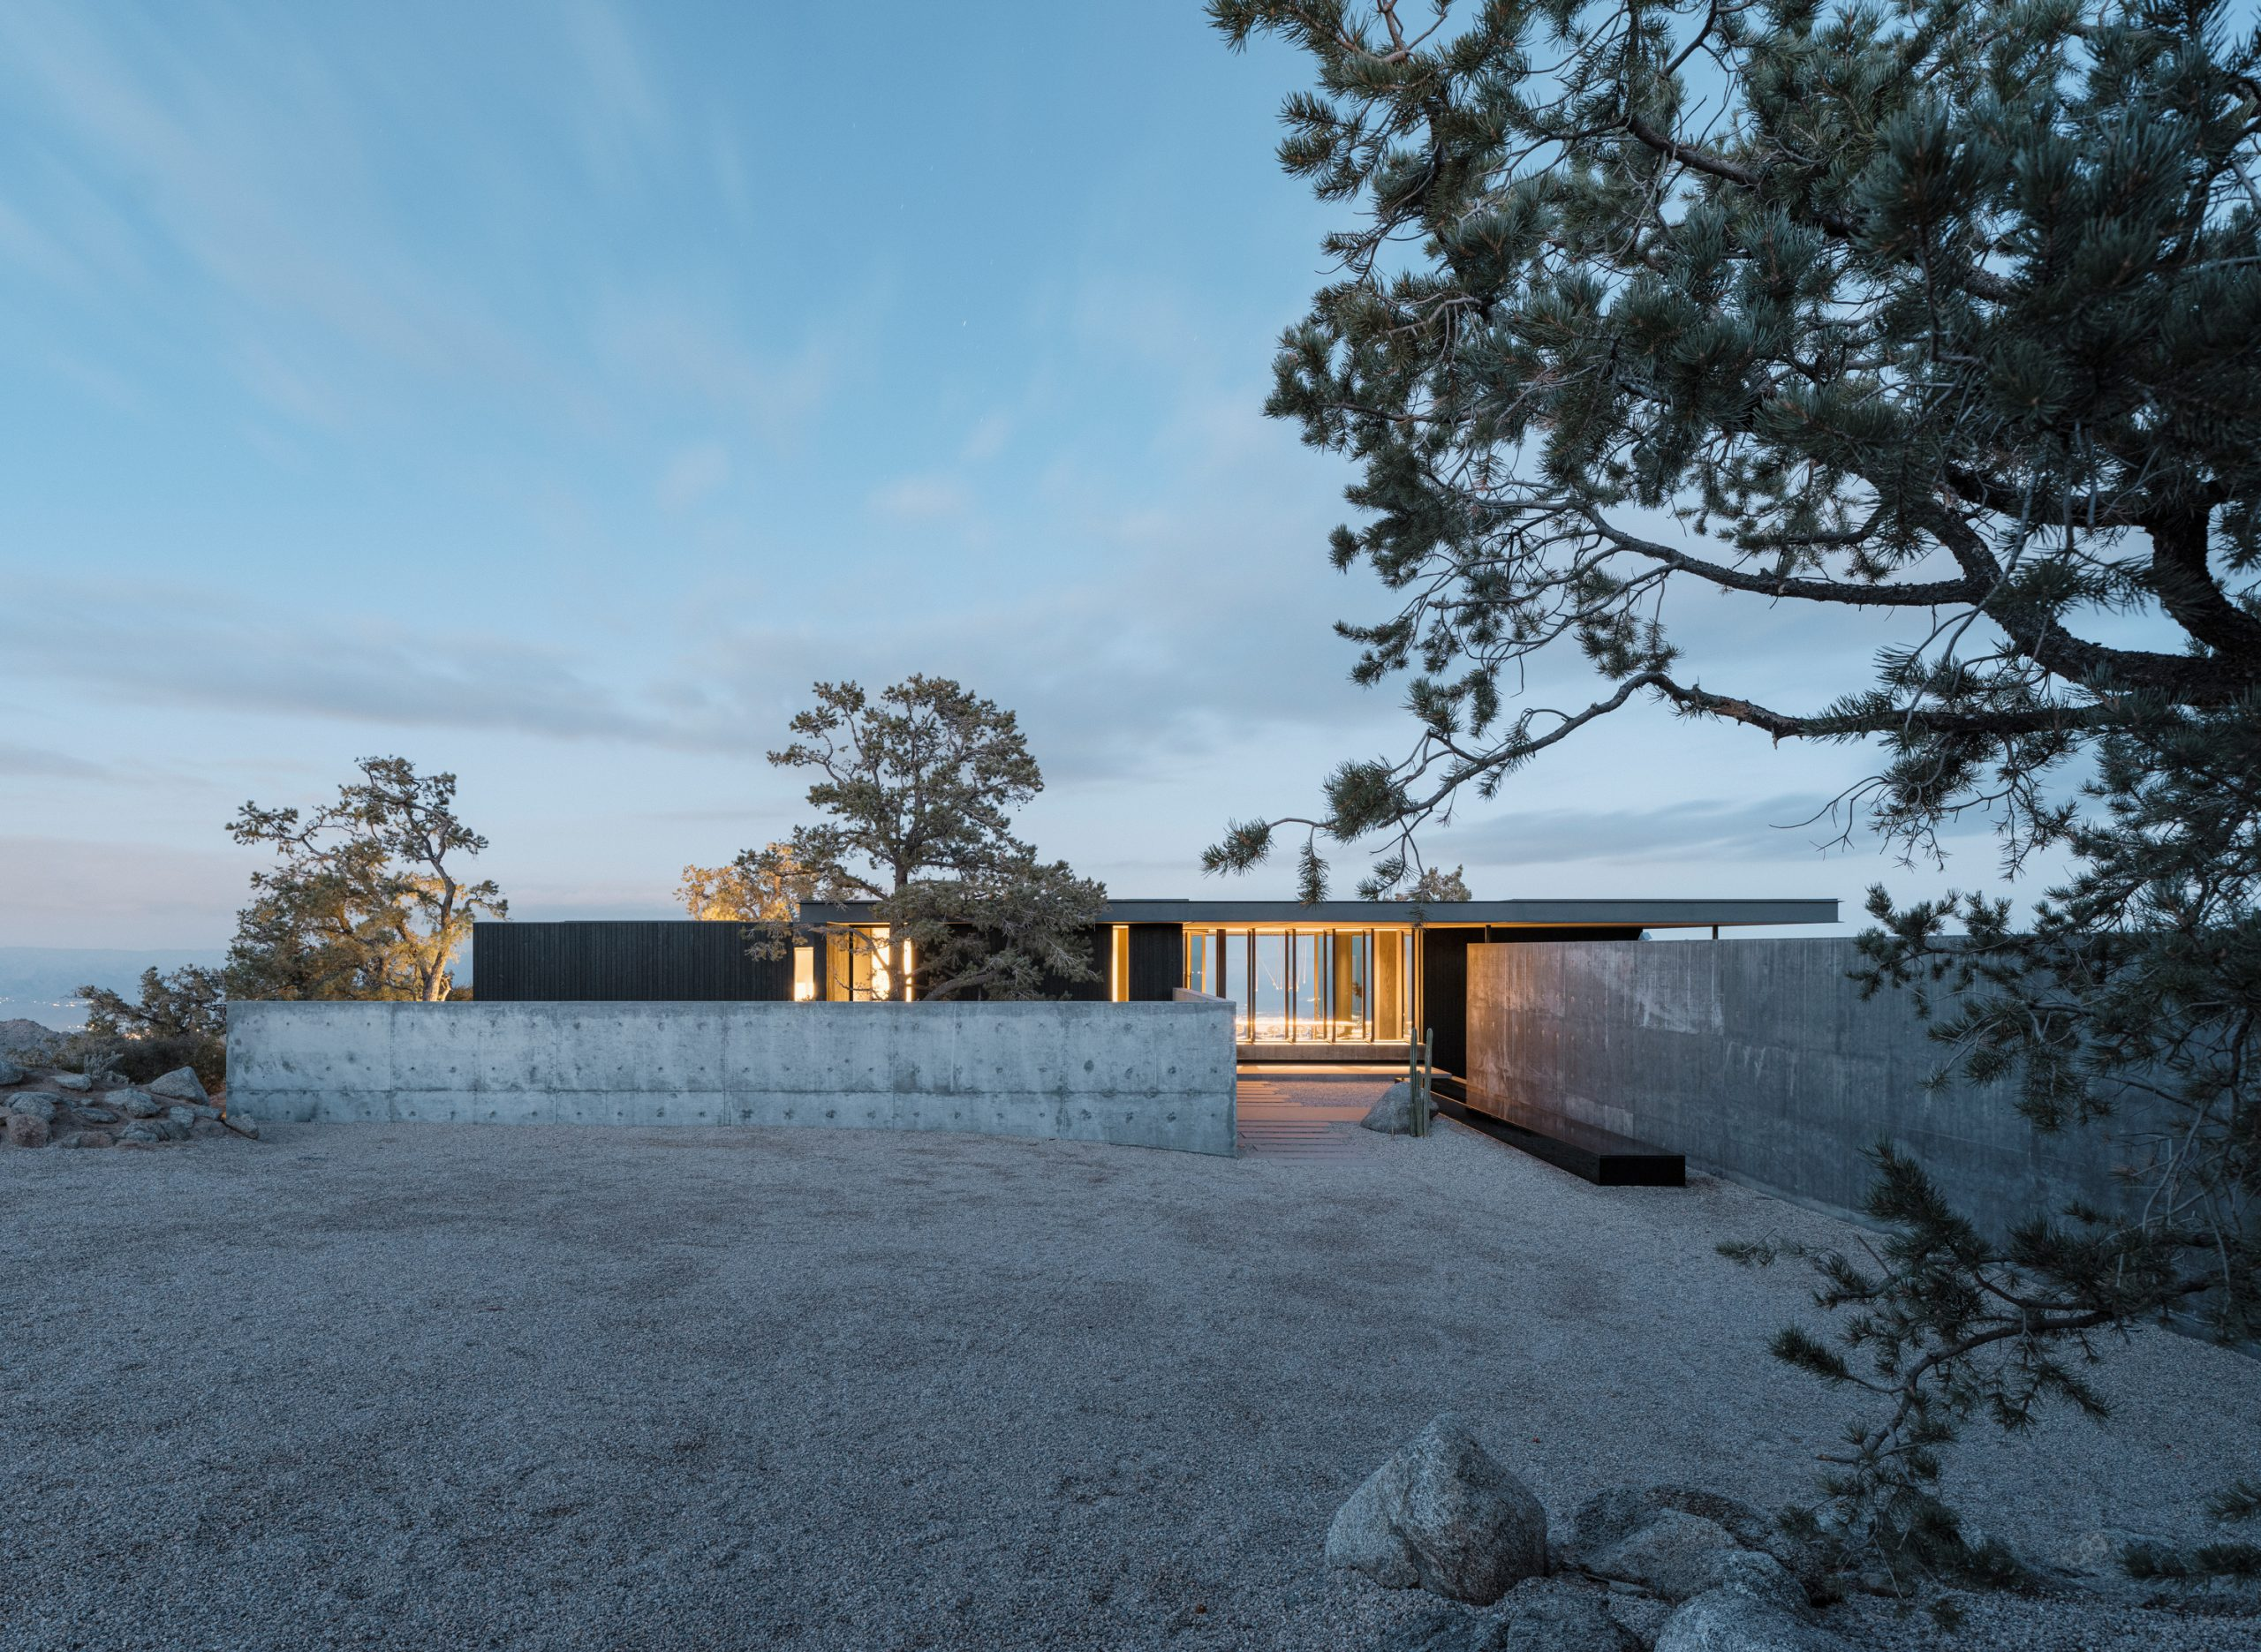 Announcing the Winners of the 2021 Residential Design Architecture Awards